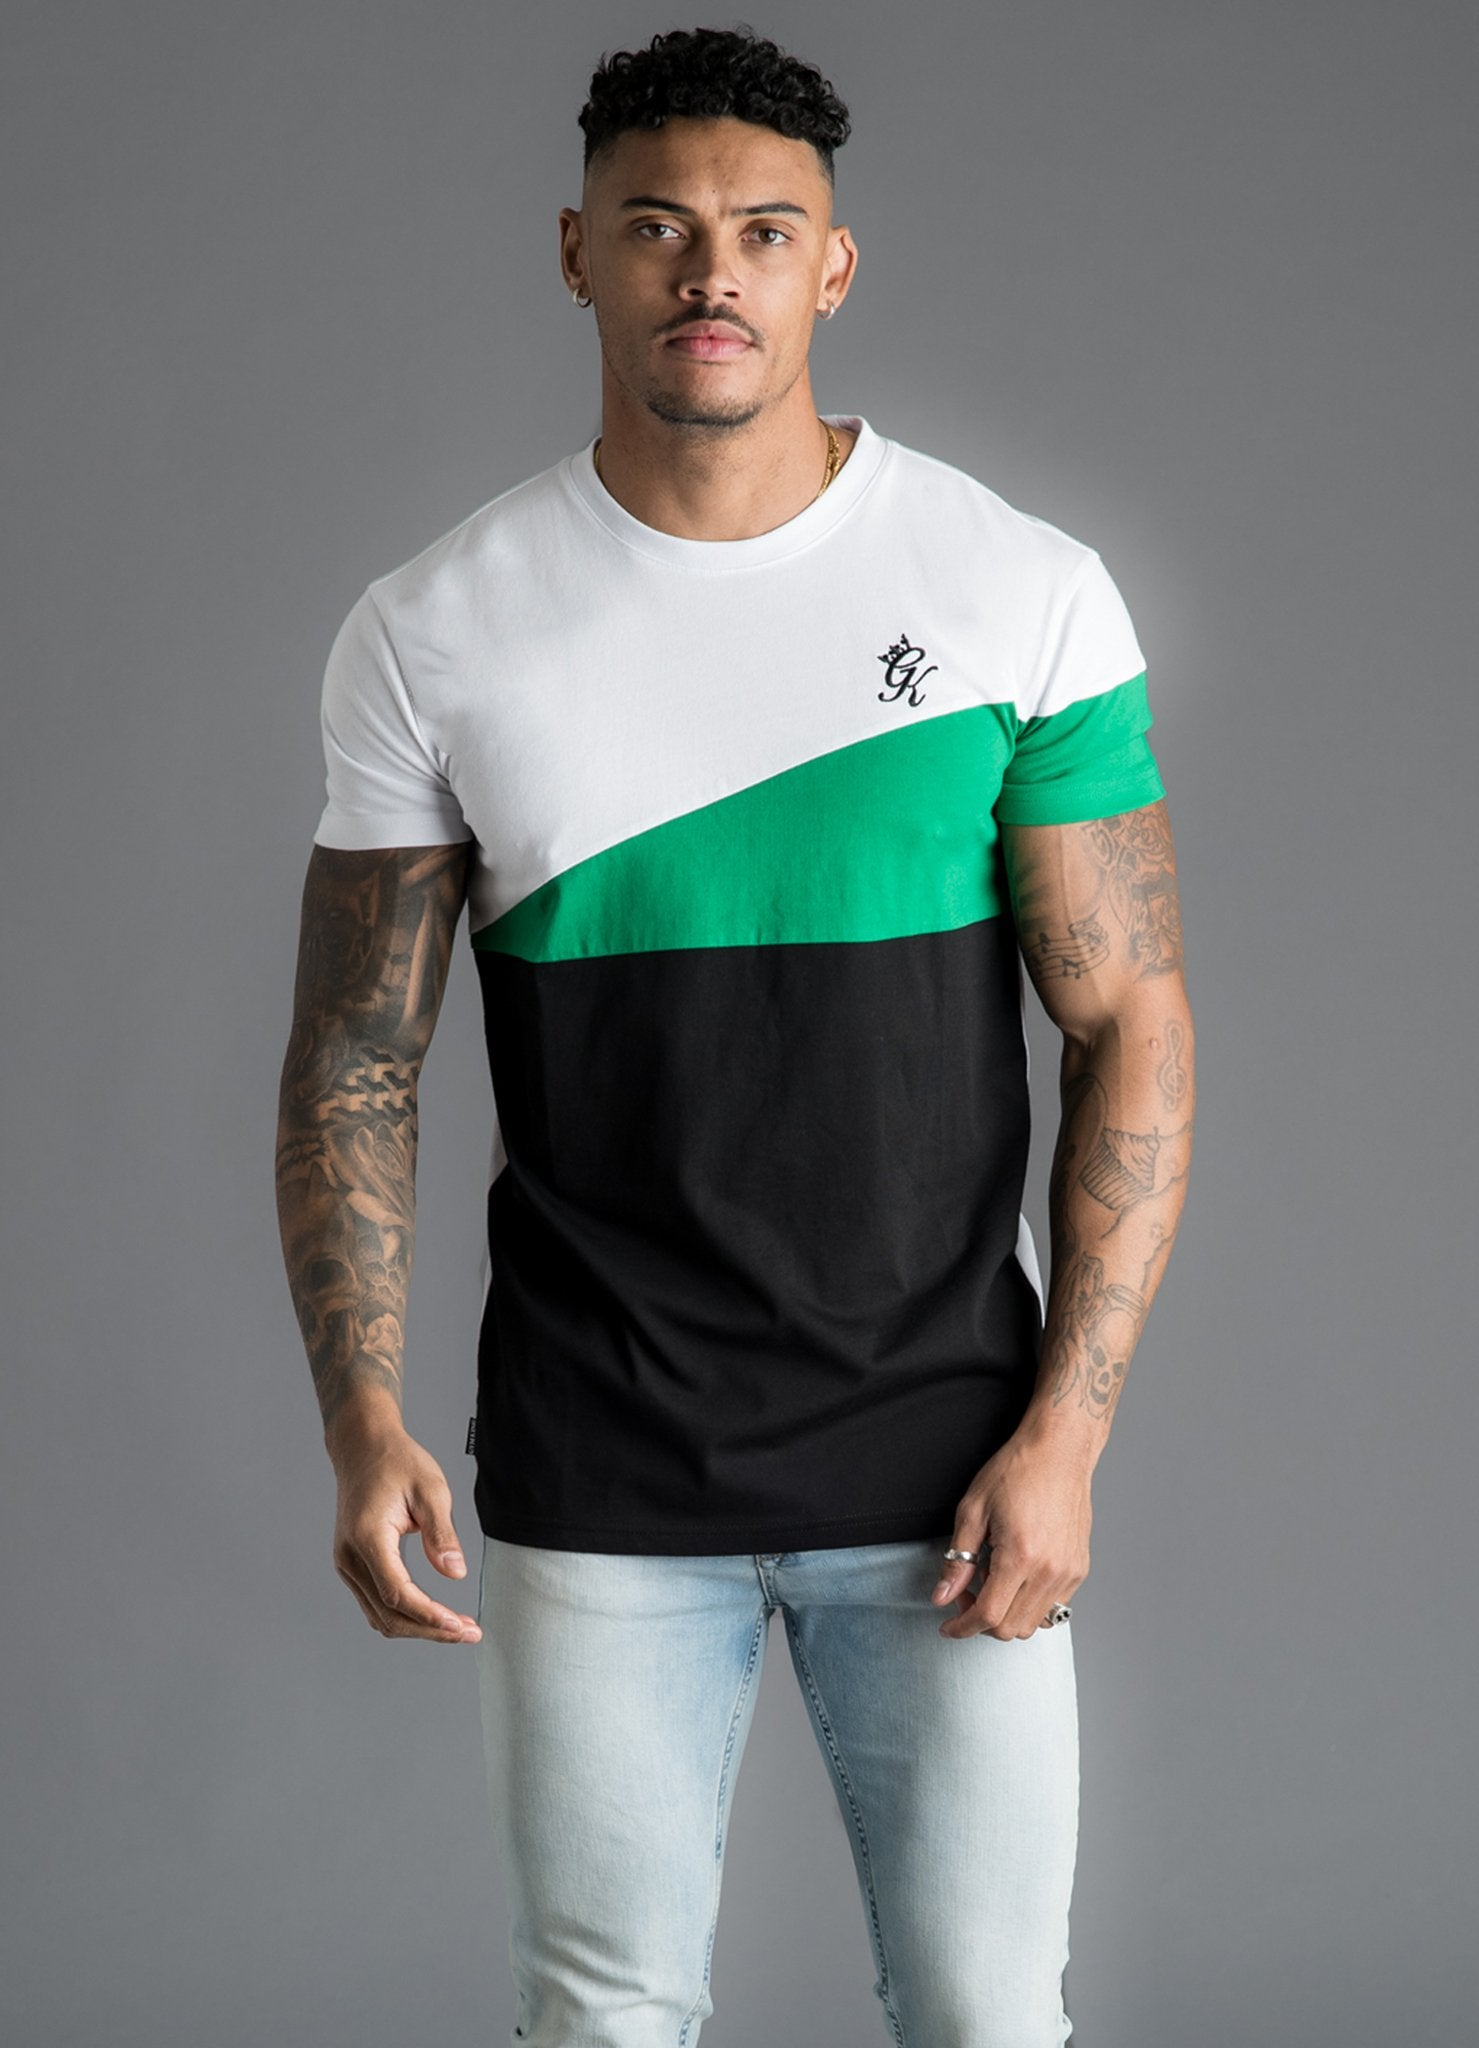 GK Nicolas T-Shirt - White/Black/Green -